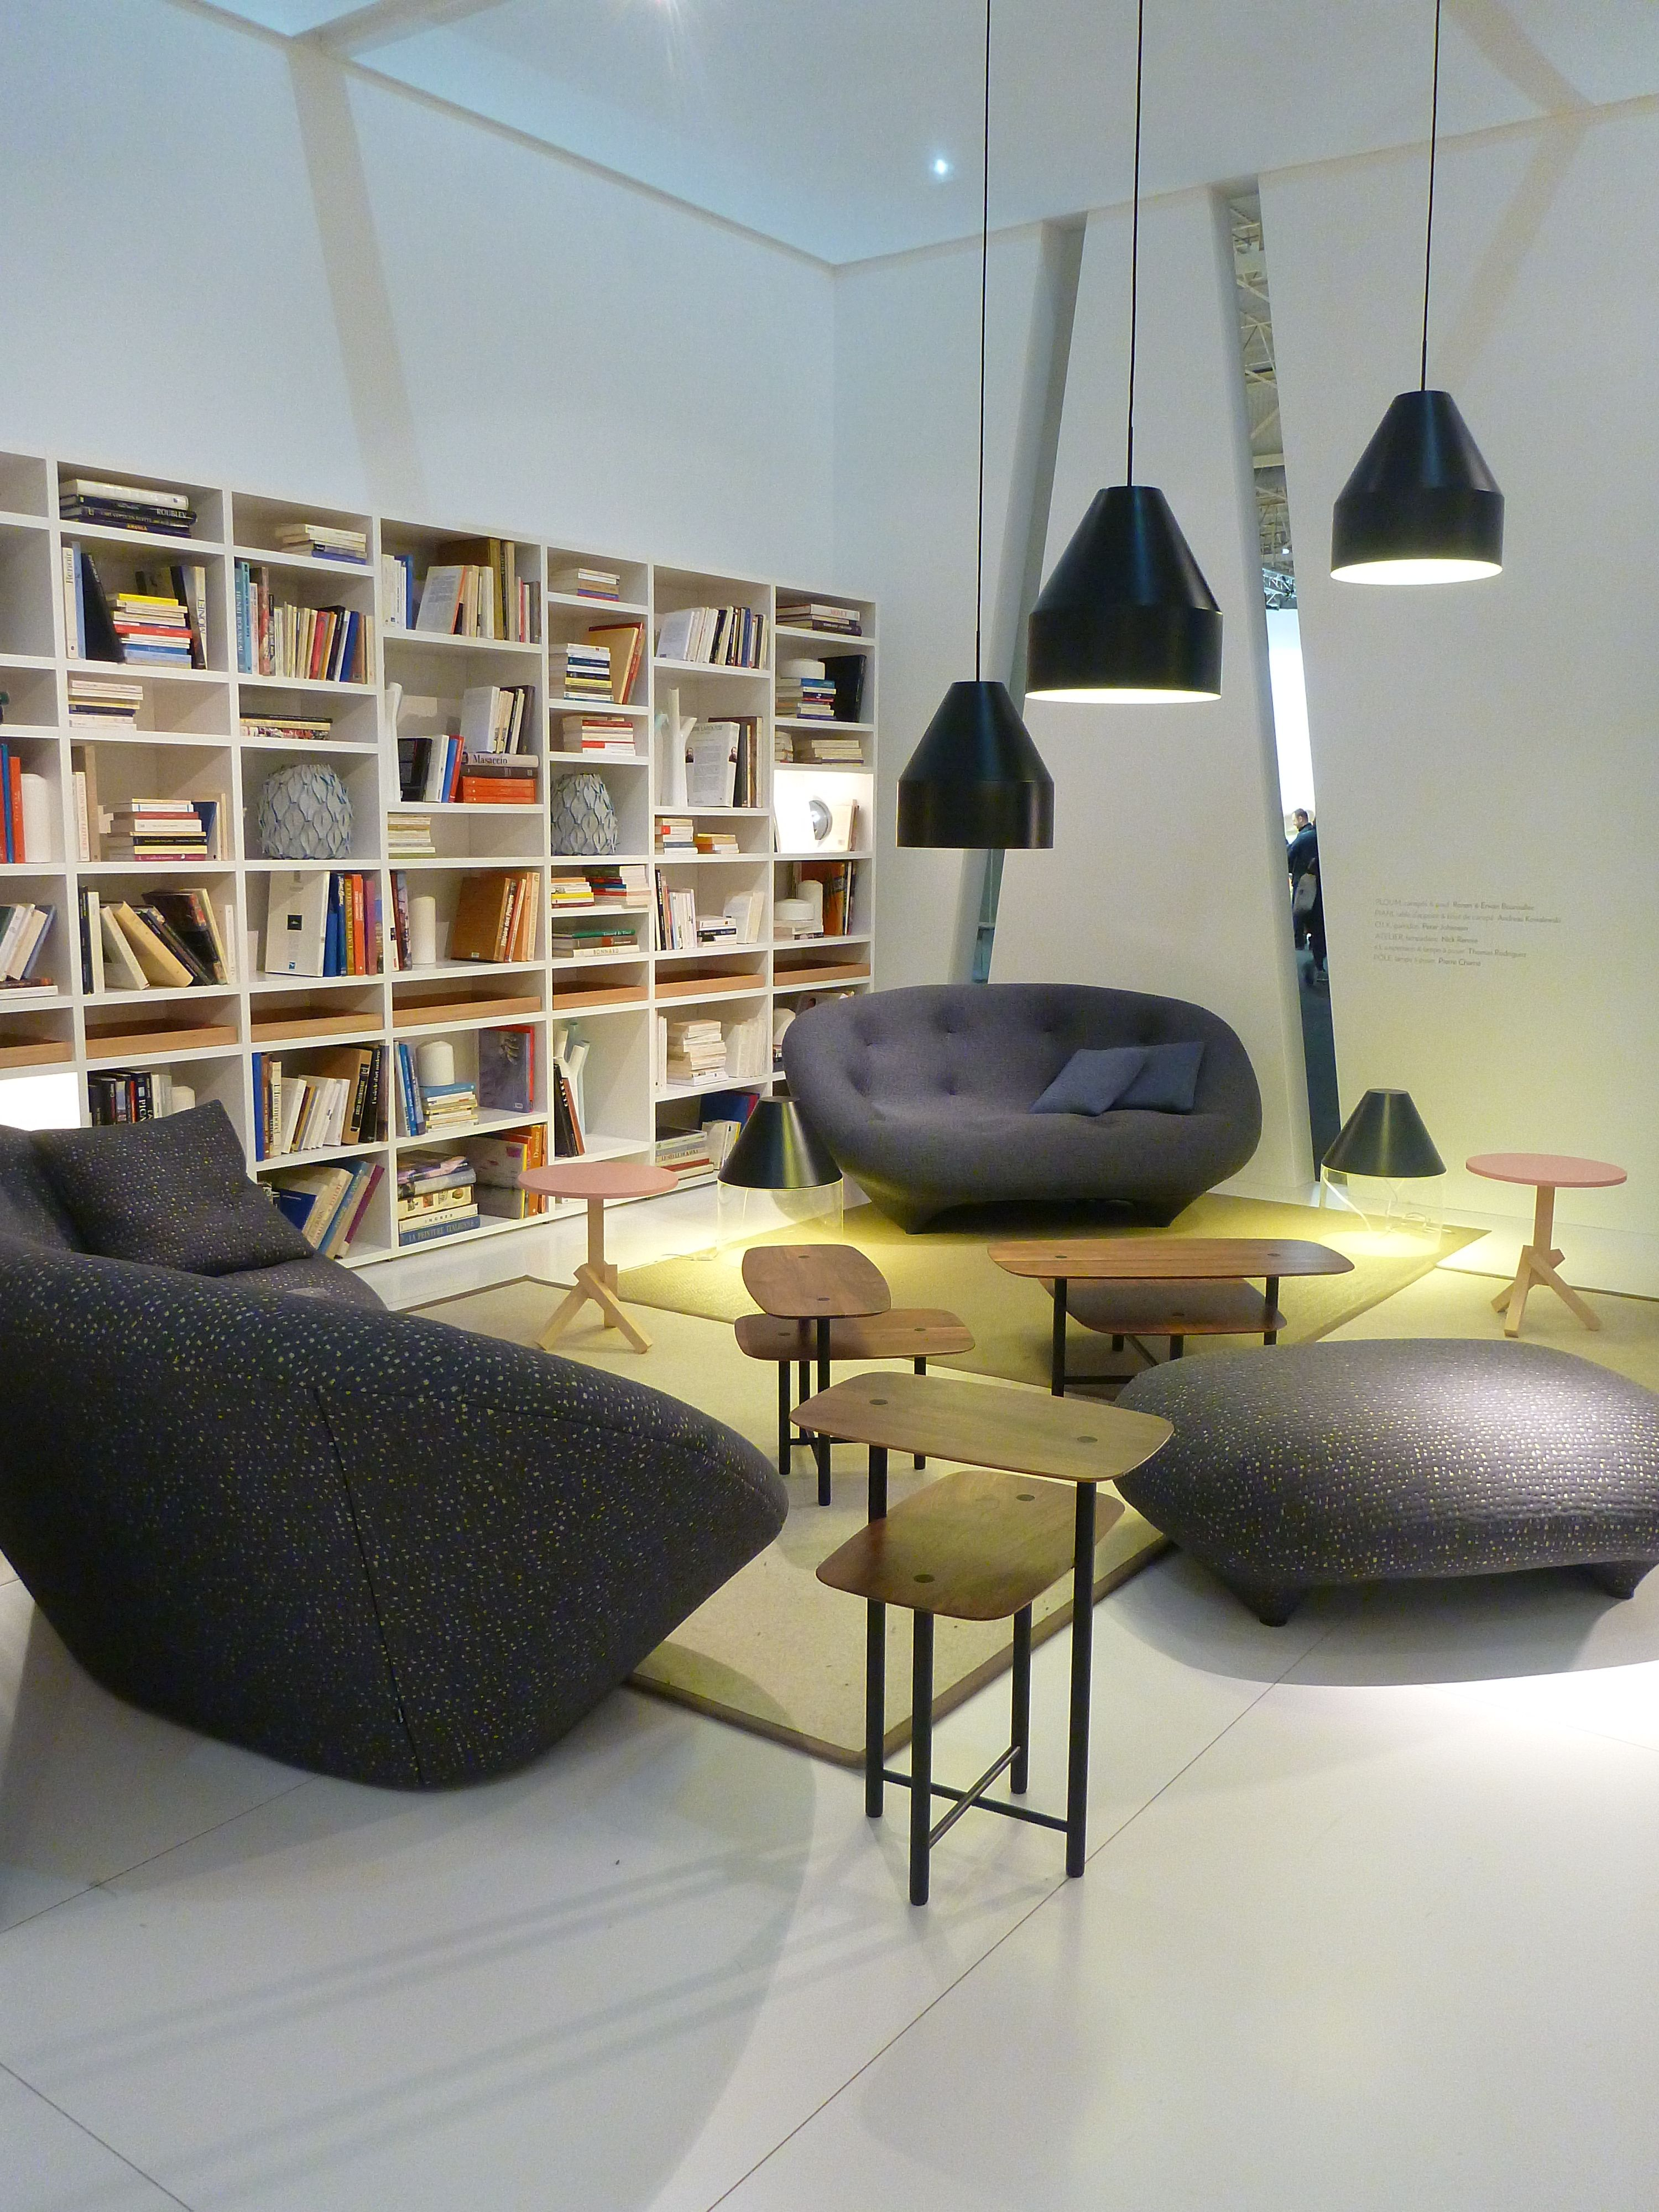 Ligne Roset Introduces The New Collection At Imm Cologne And Maison Objet Paris 2014 Modern Furniture Stores Furniture Furniture Design